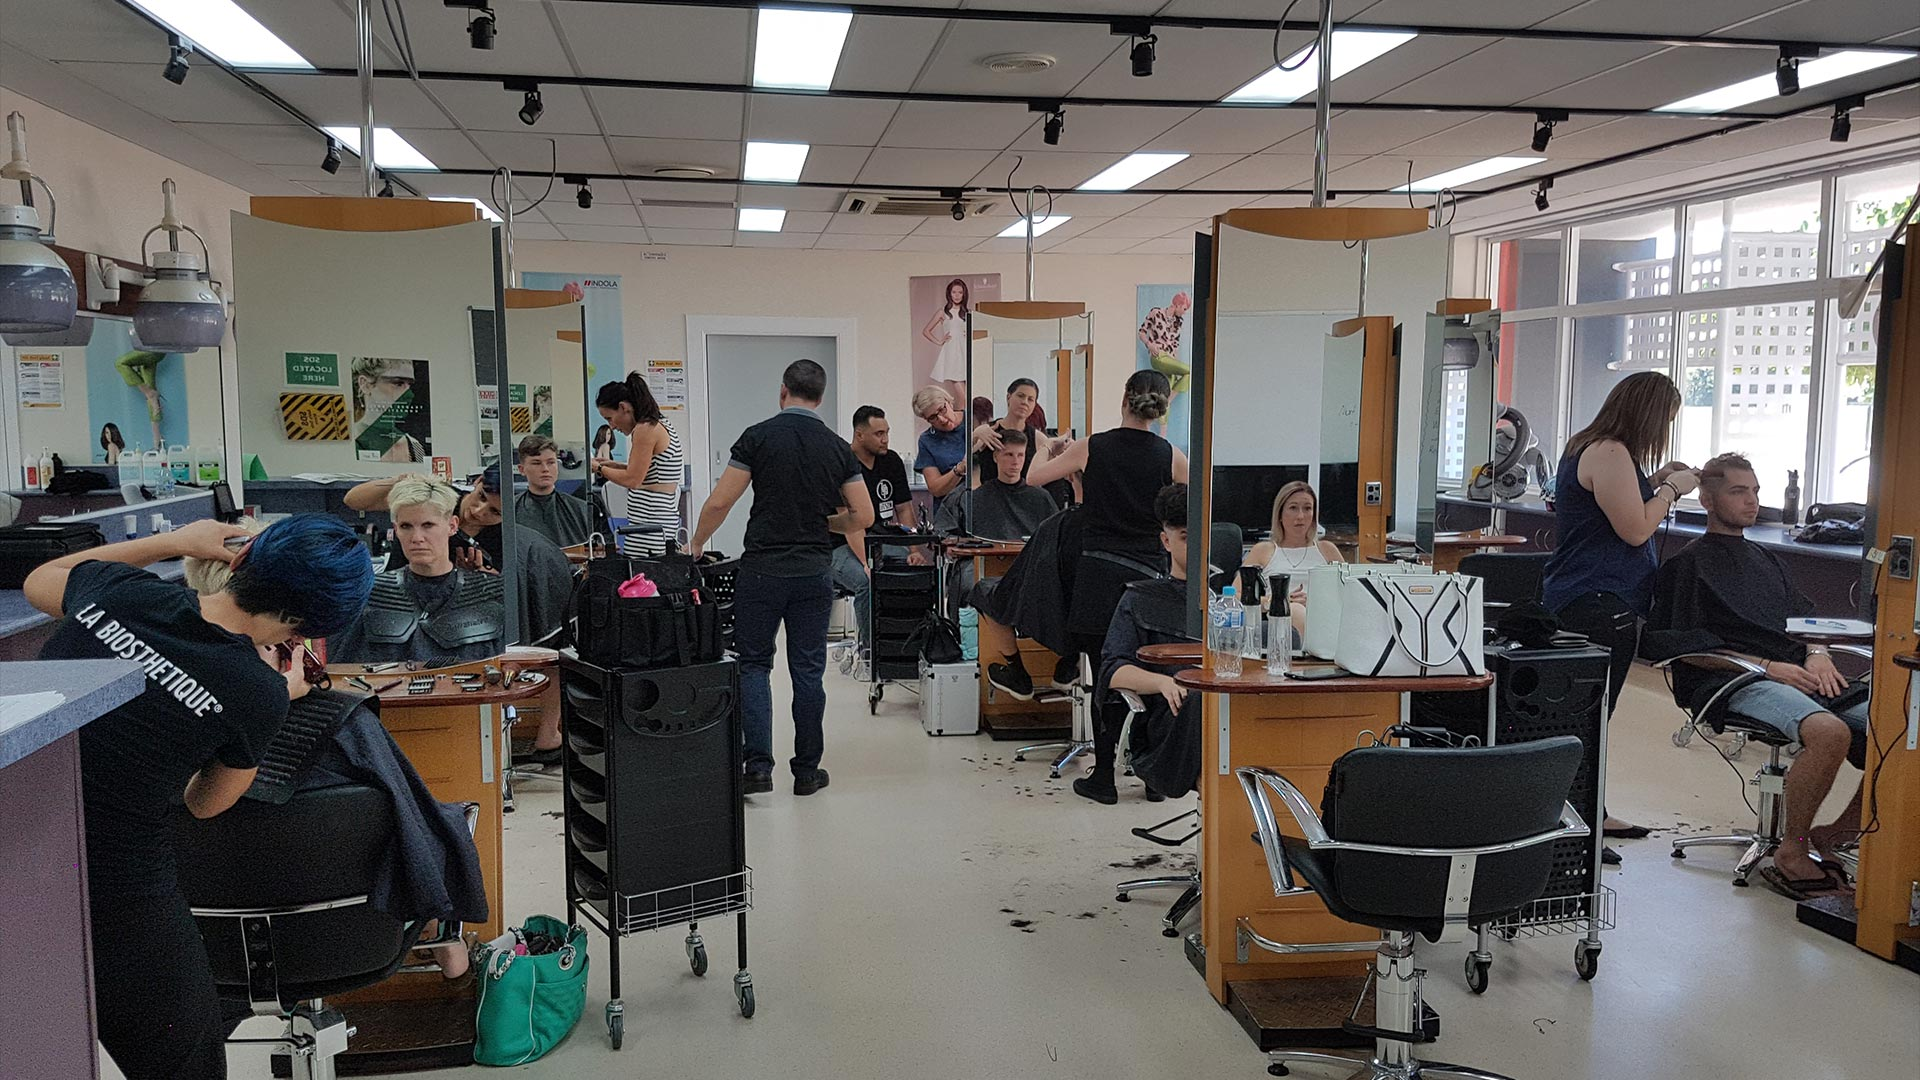 cairns-facilities-beauty-and-hairdressing-hairdressing-salons-01.jpg